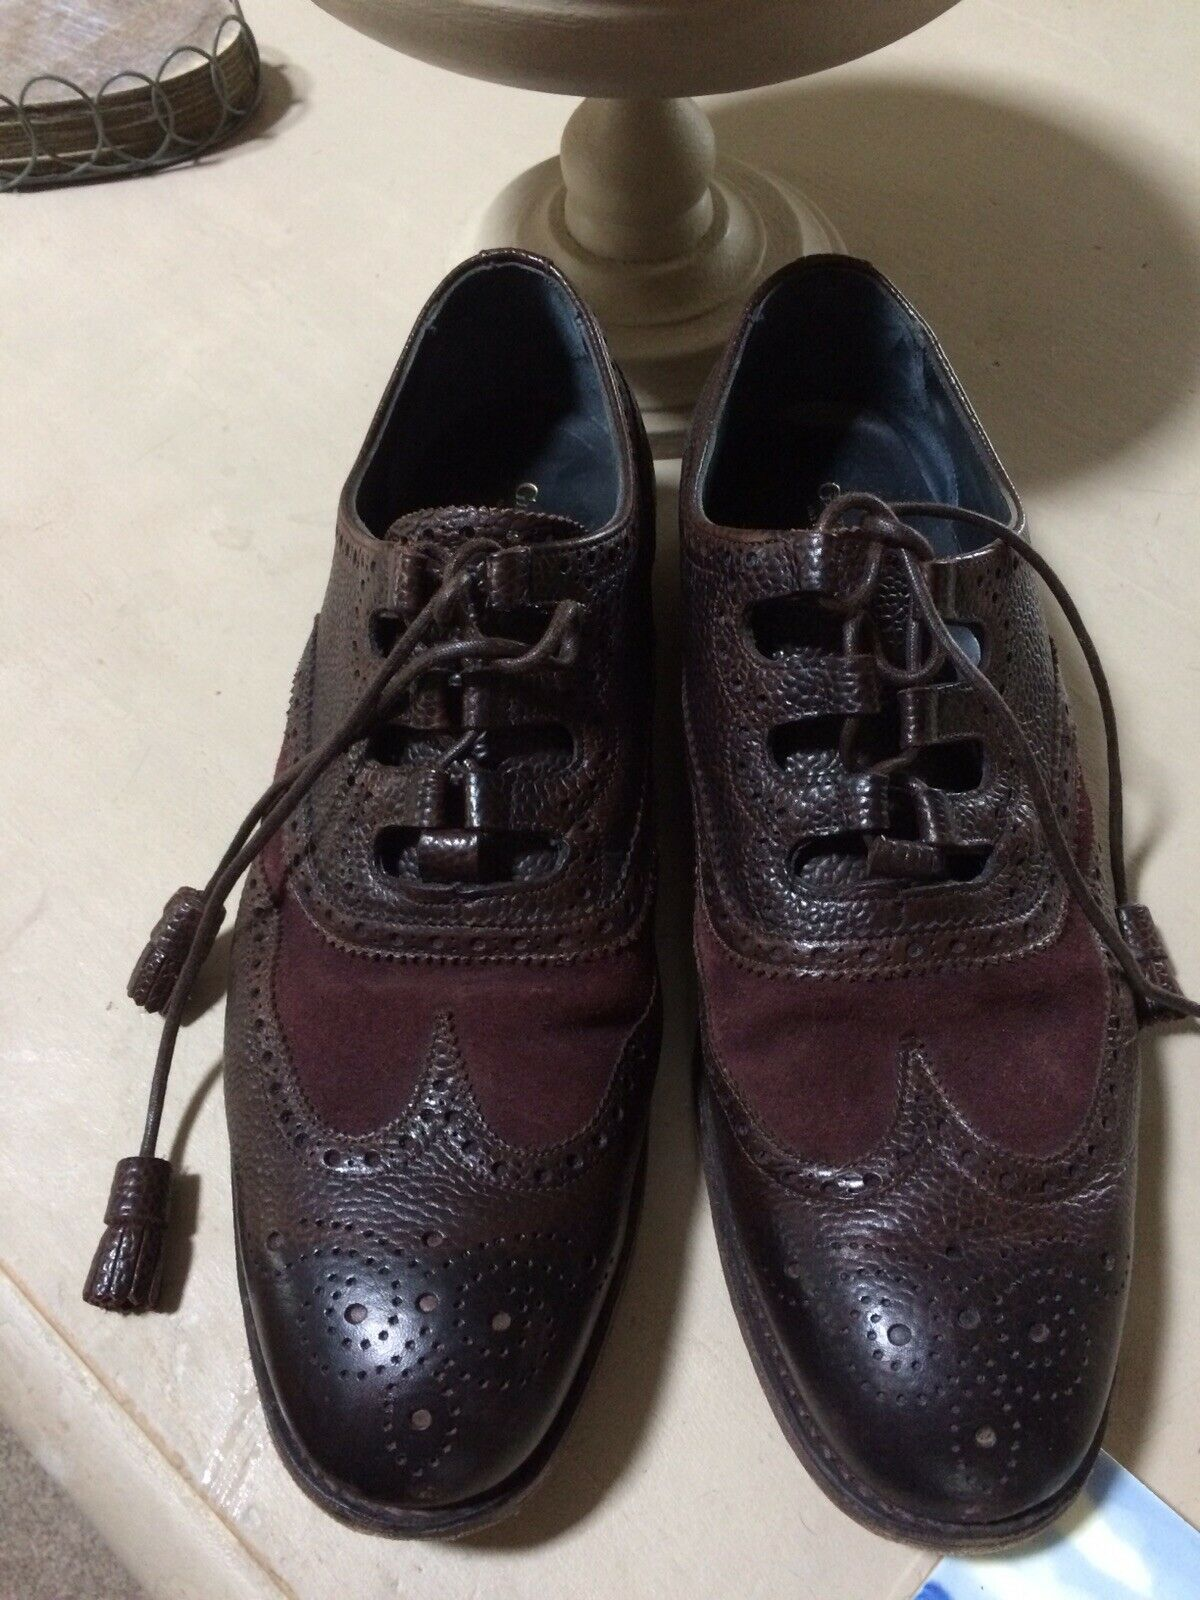 GIEVES & HAWKES Leather Brogues Chocolate Brown UK 8